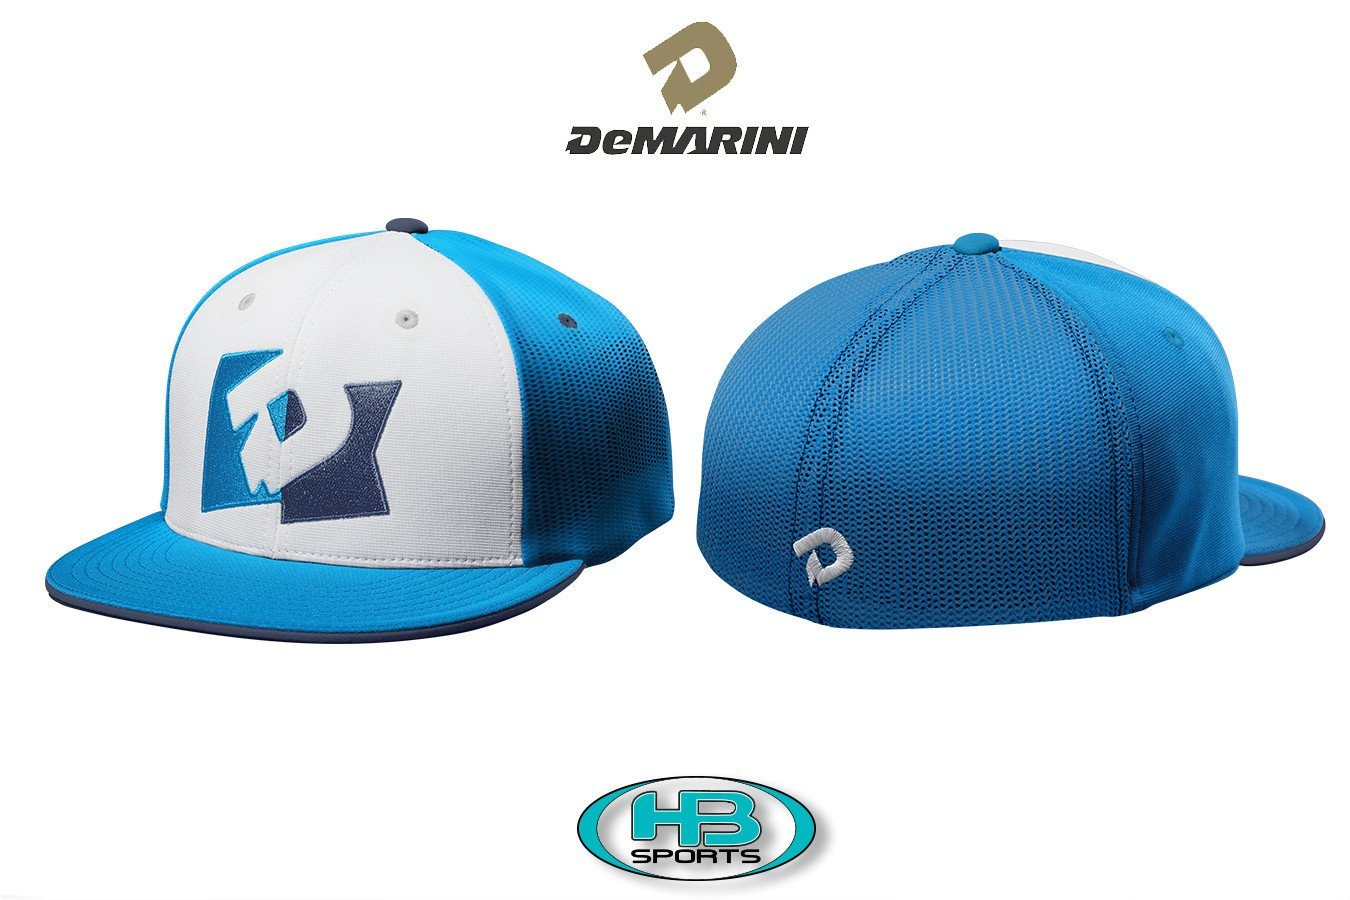 ae4b083c74a272 DeMarini D-Pennant FLEXFIT Fitted Baseball and Softball Hat ...